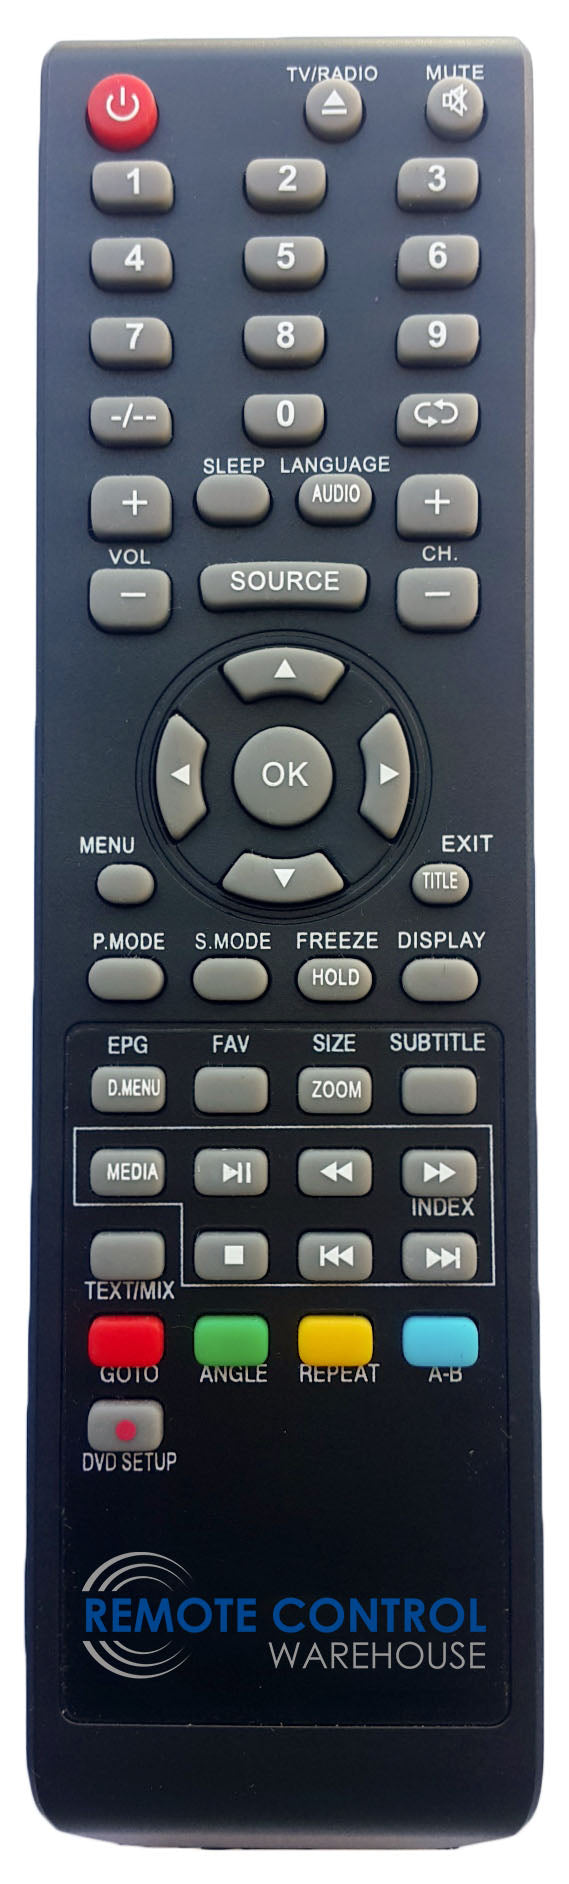 REPLACEMENT BAUHN REMOTE CONTROL SUBSTITUTE  ATV50F-415  ATV50F415  LCD TV - Remote Control Warehouse